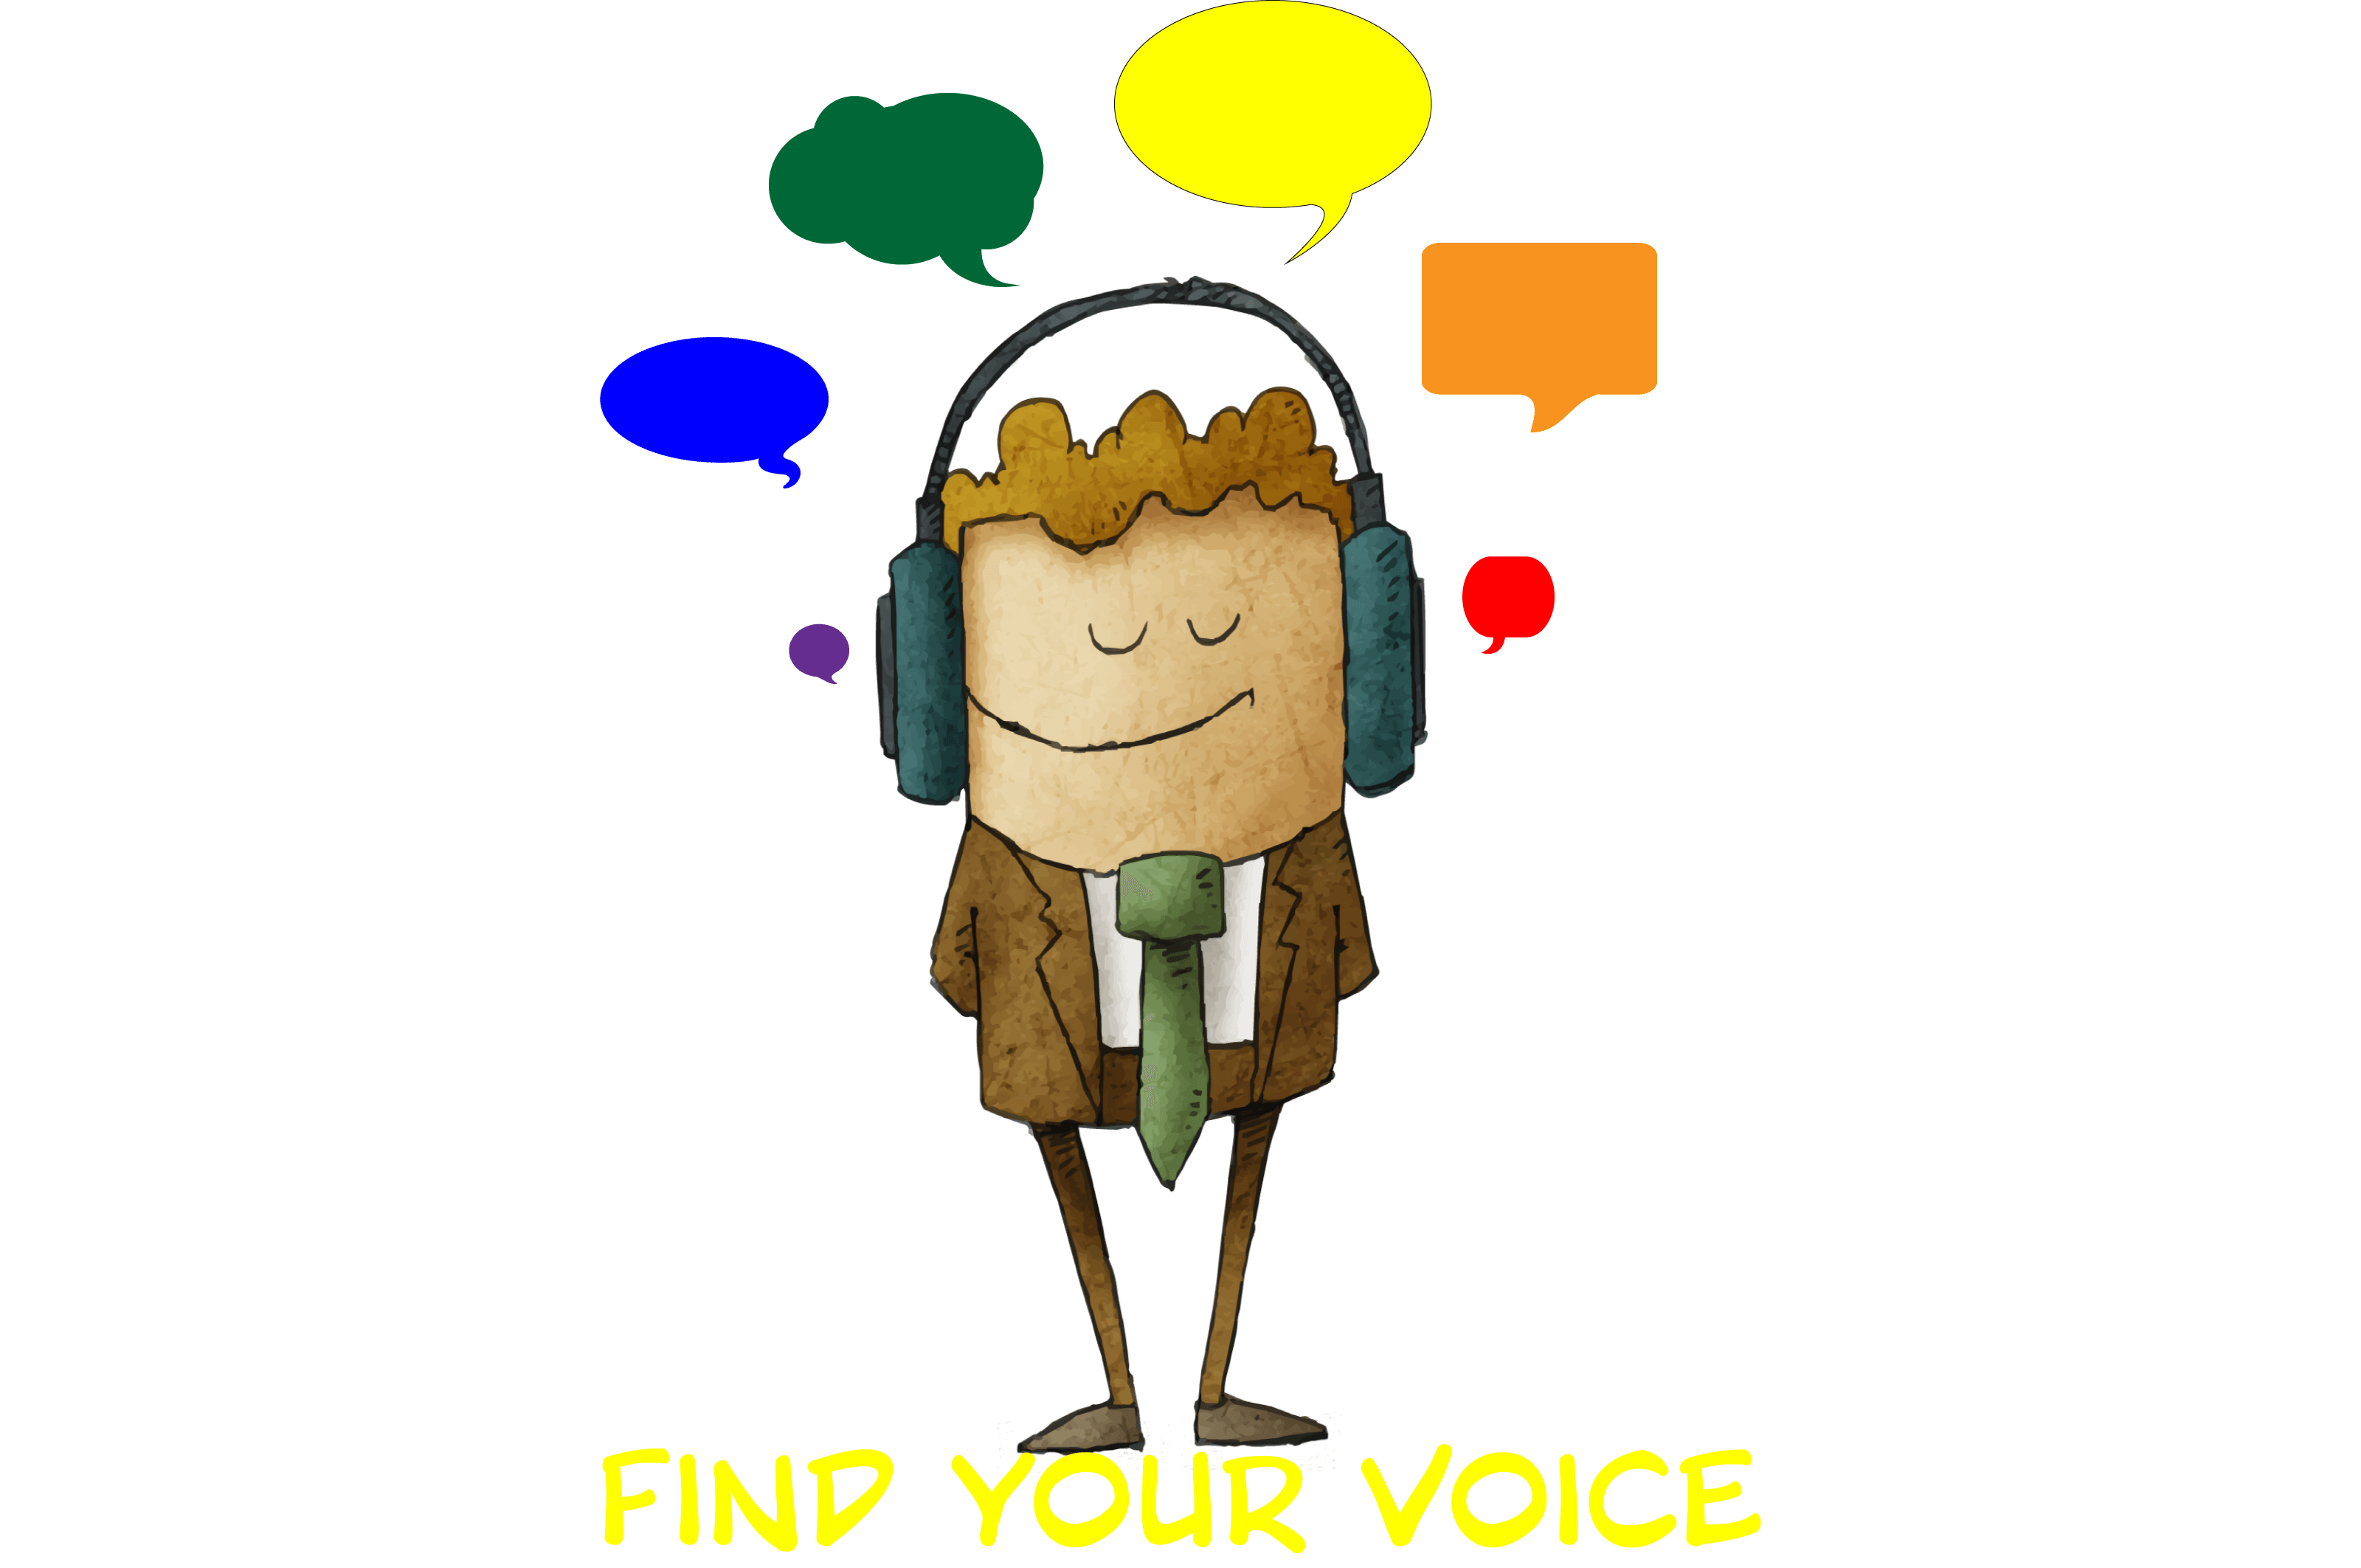 svg royalty free stock Creative overs audio production. Advertising clipart voice customer.